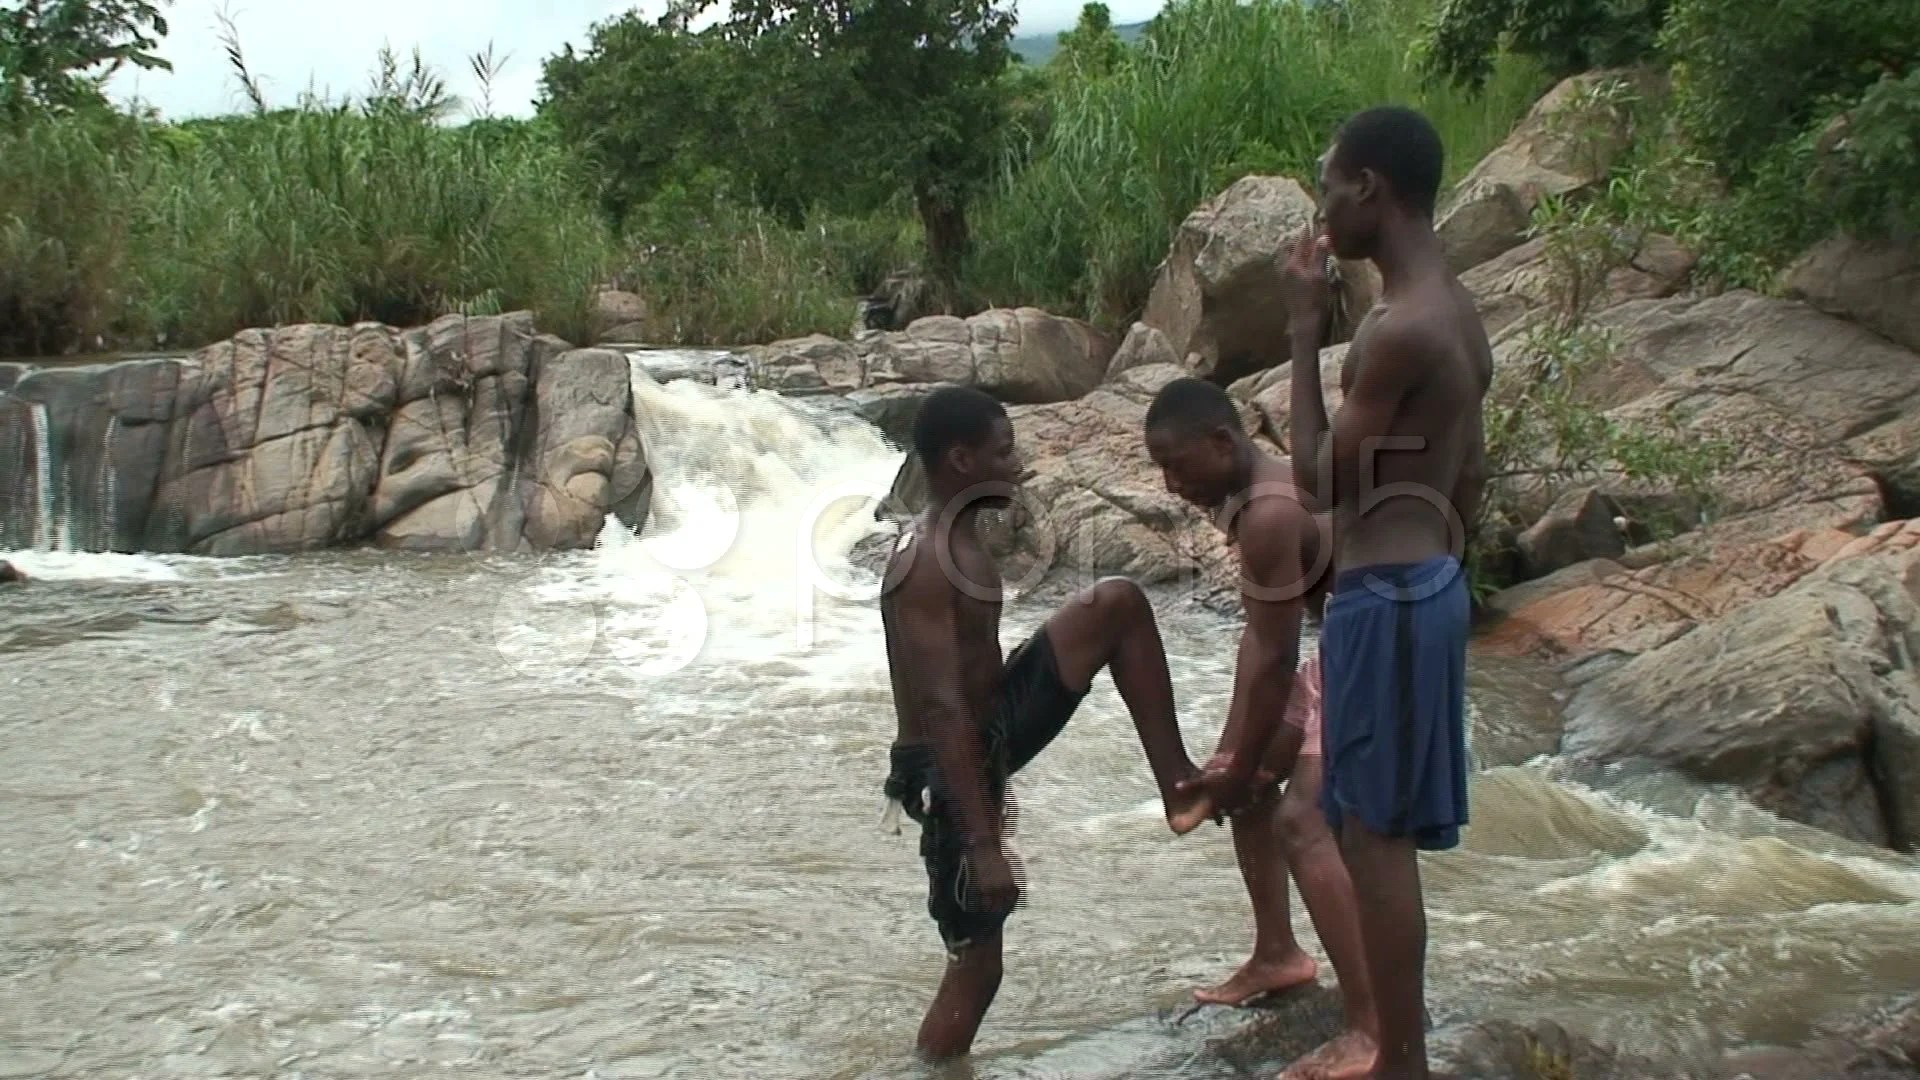 Malawi African Boys In A River 7 Stock Video 745795